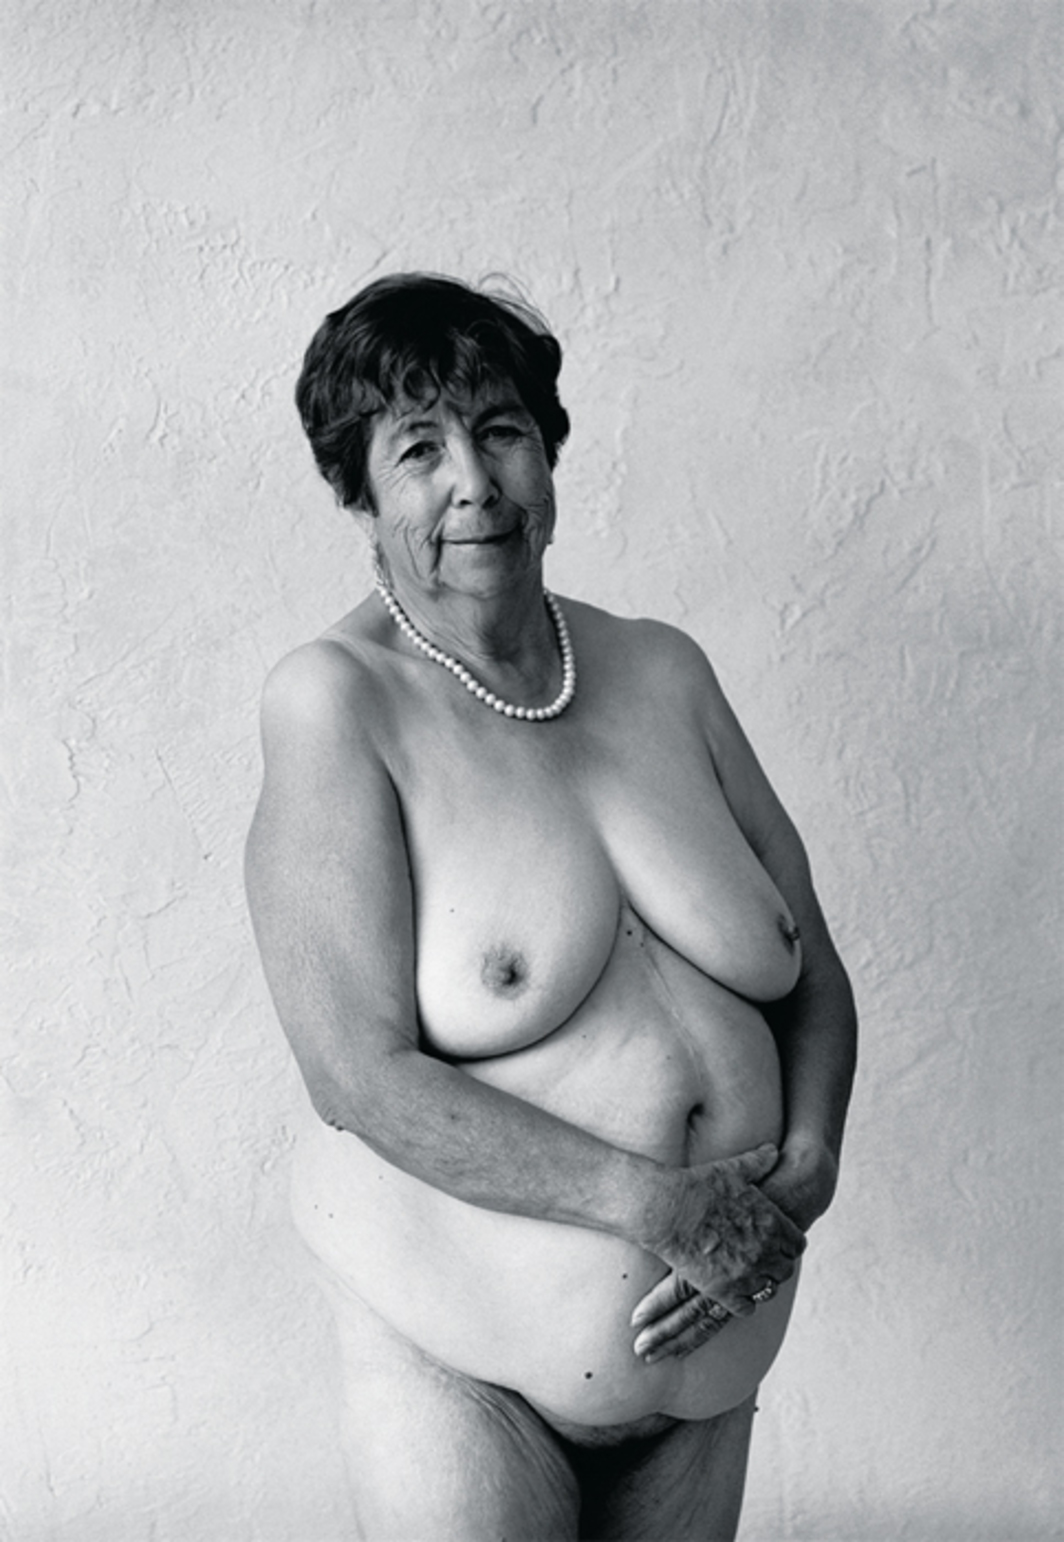 "Paz Errázuriz, Untitled, 2002, digital print, 32 1/4 x 24 3/8"". From the series ""Cuerpos"" (Bodies), 2002."